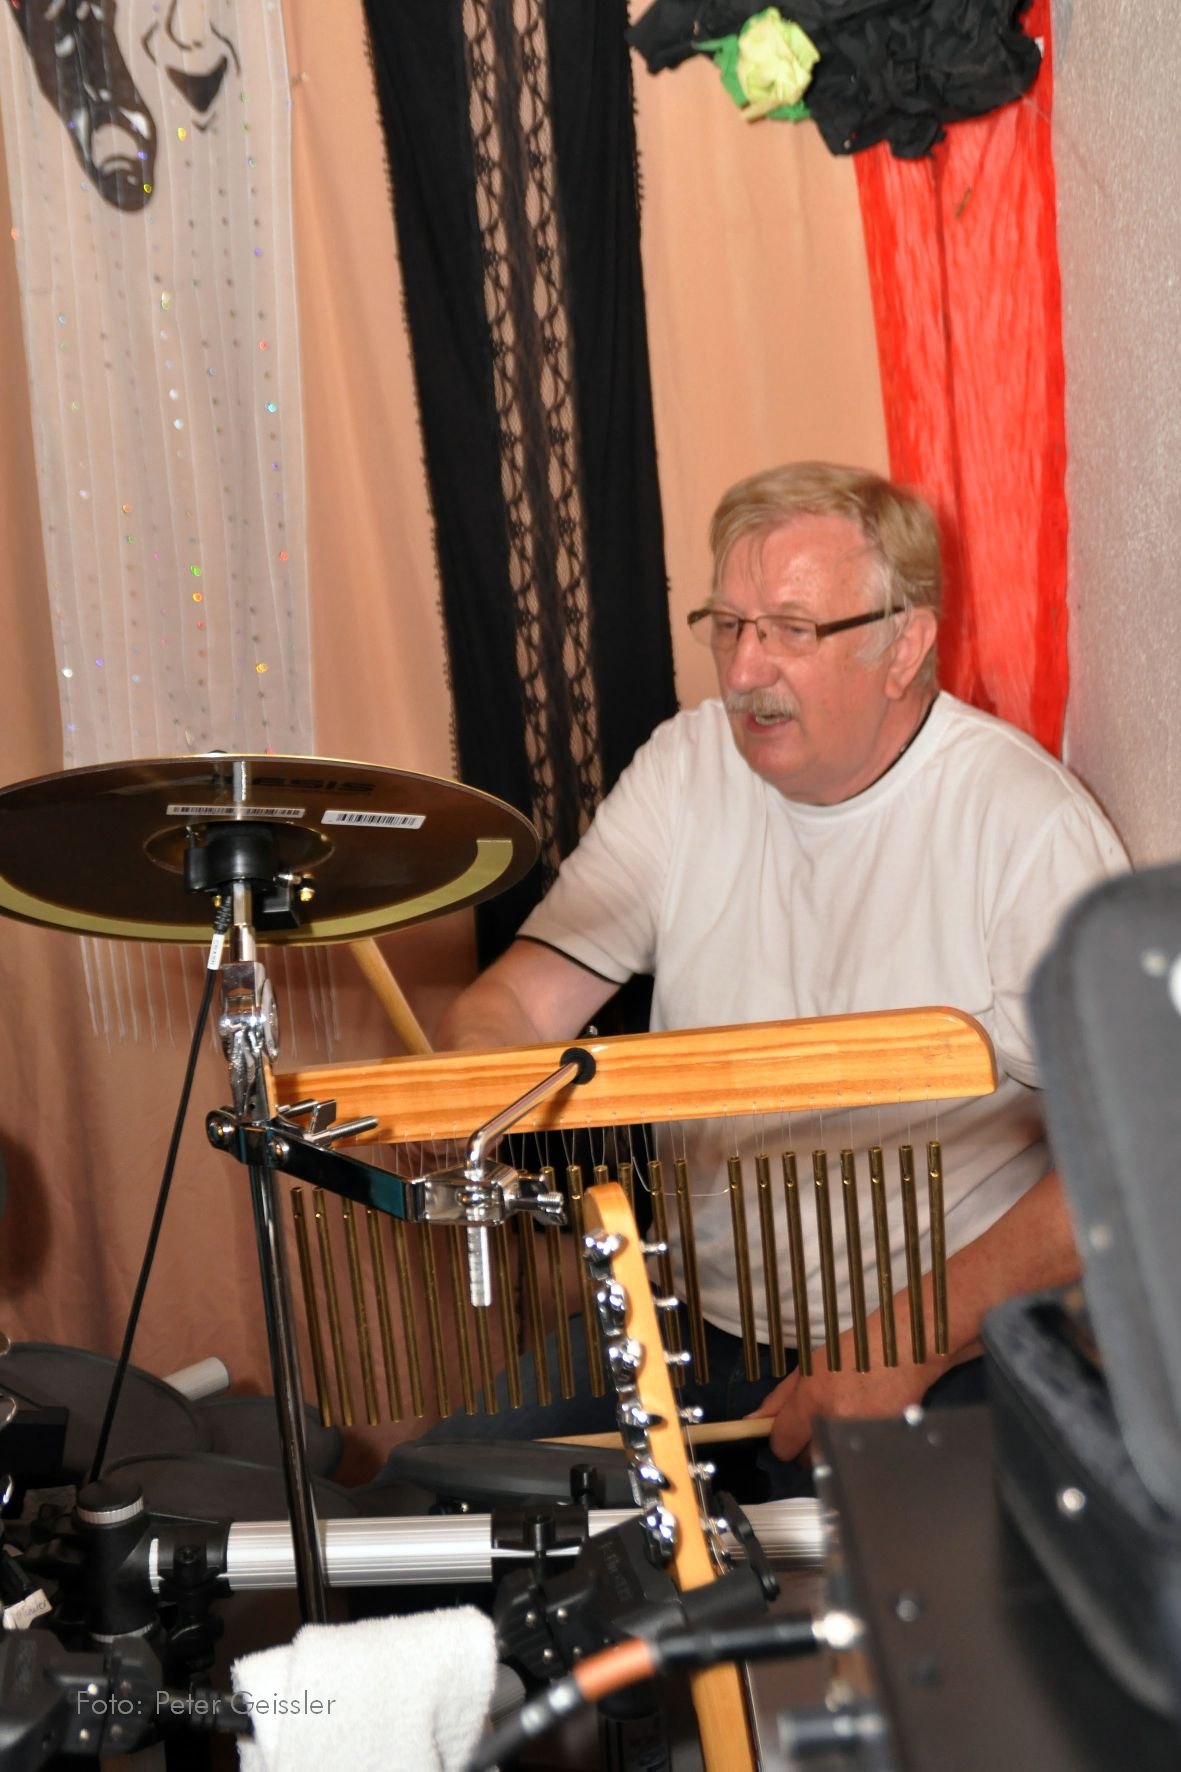 Nobbi an den Drums